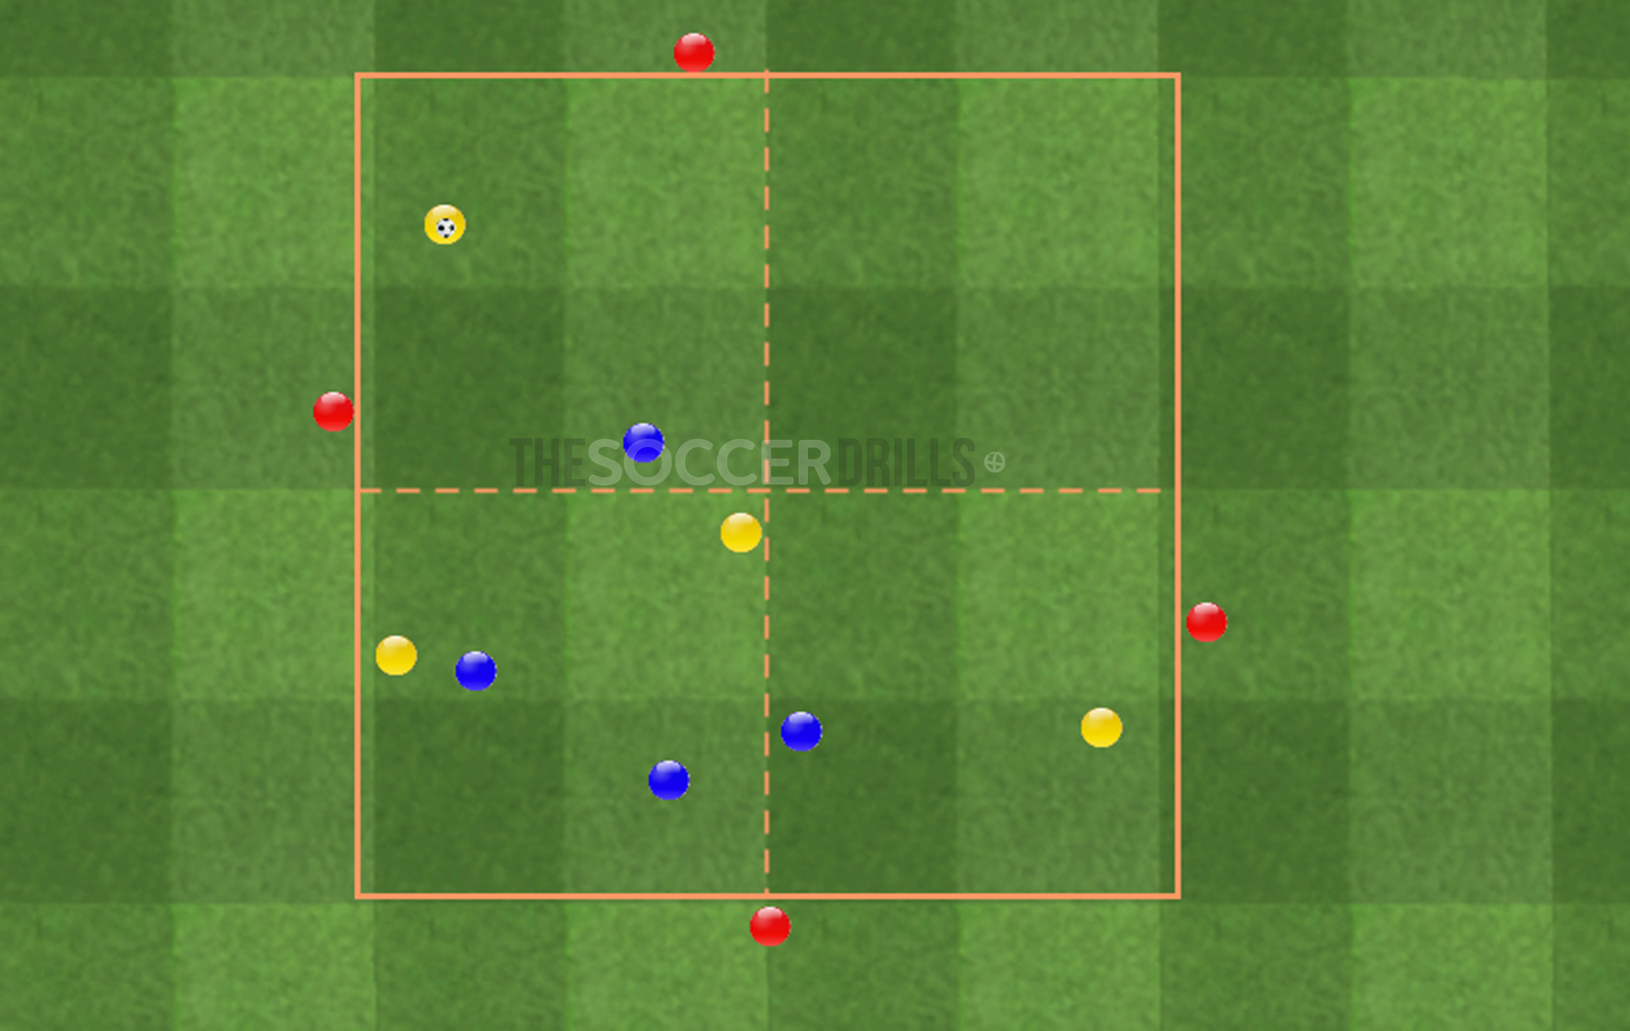 Small Sided Game, Soccer Drills for coaches, Soccer Drills for kds, Tactical Football Exercises, Tacical Soccer Drills, Drills for counterattack, Possesion  possesion drills soccer, Small-Sided Soccer Games,